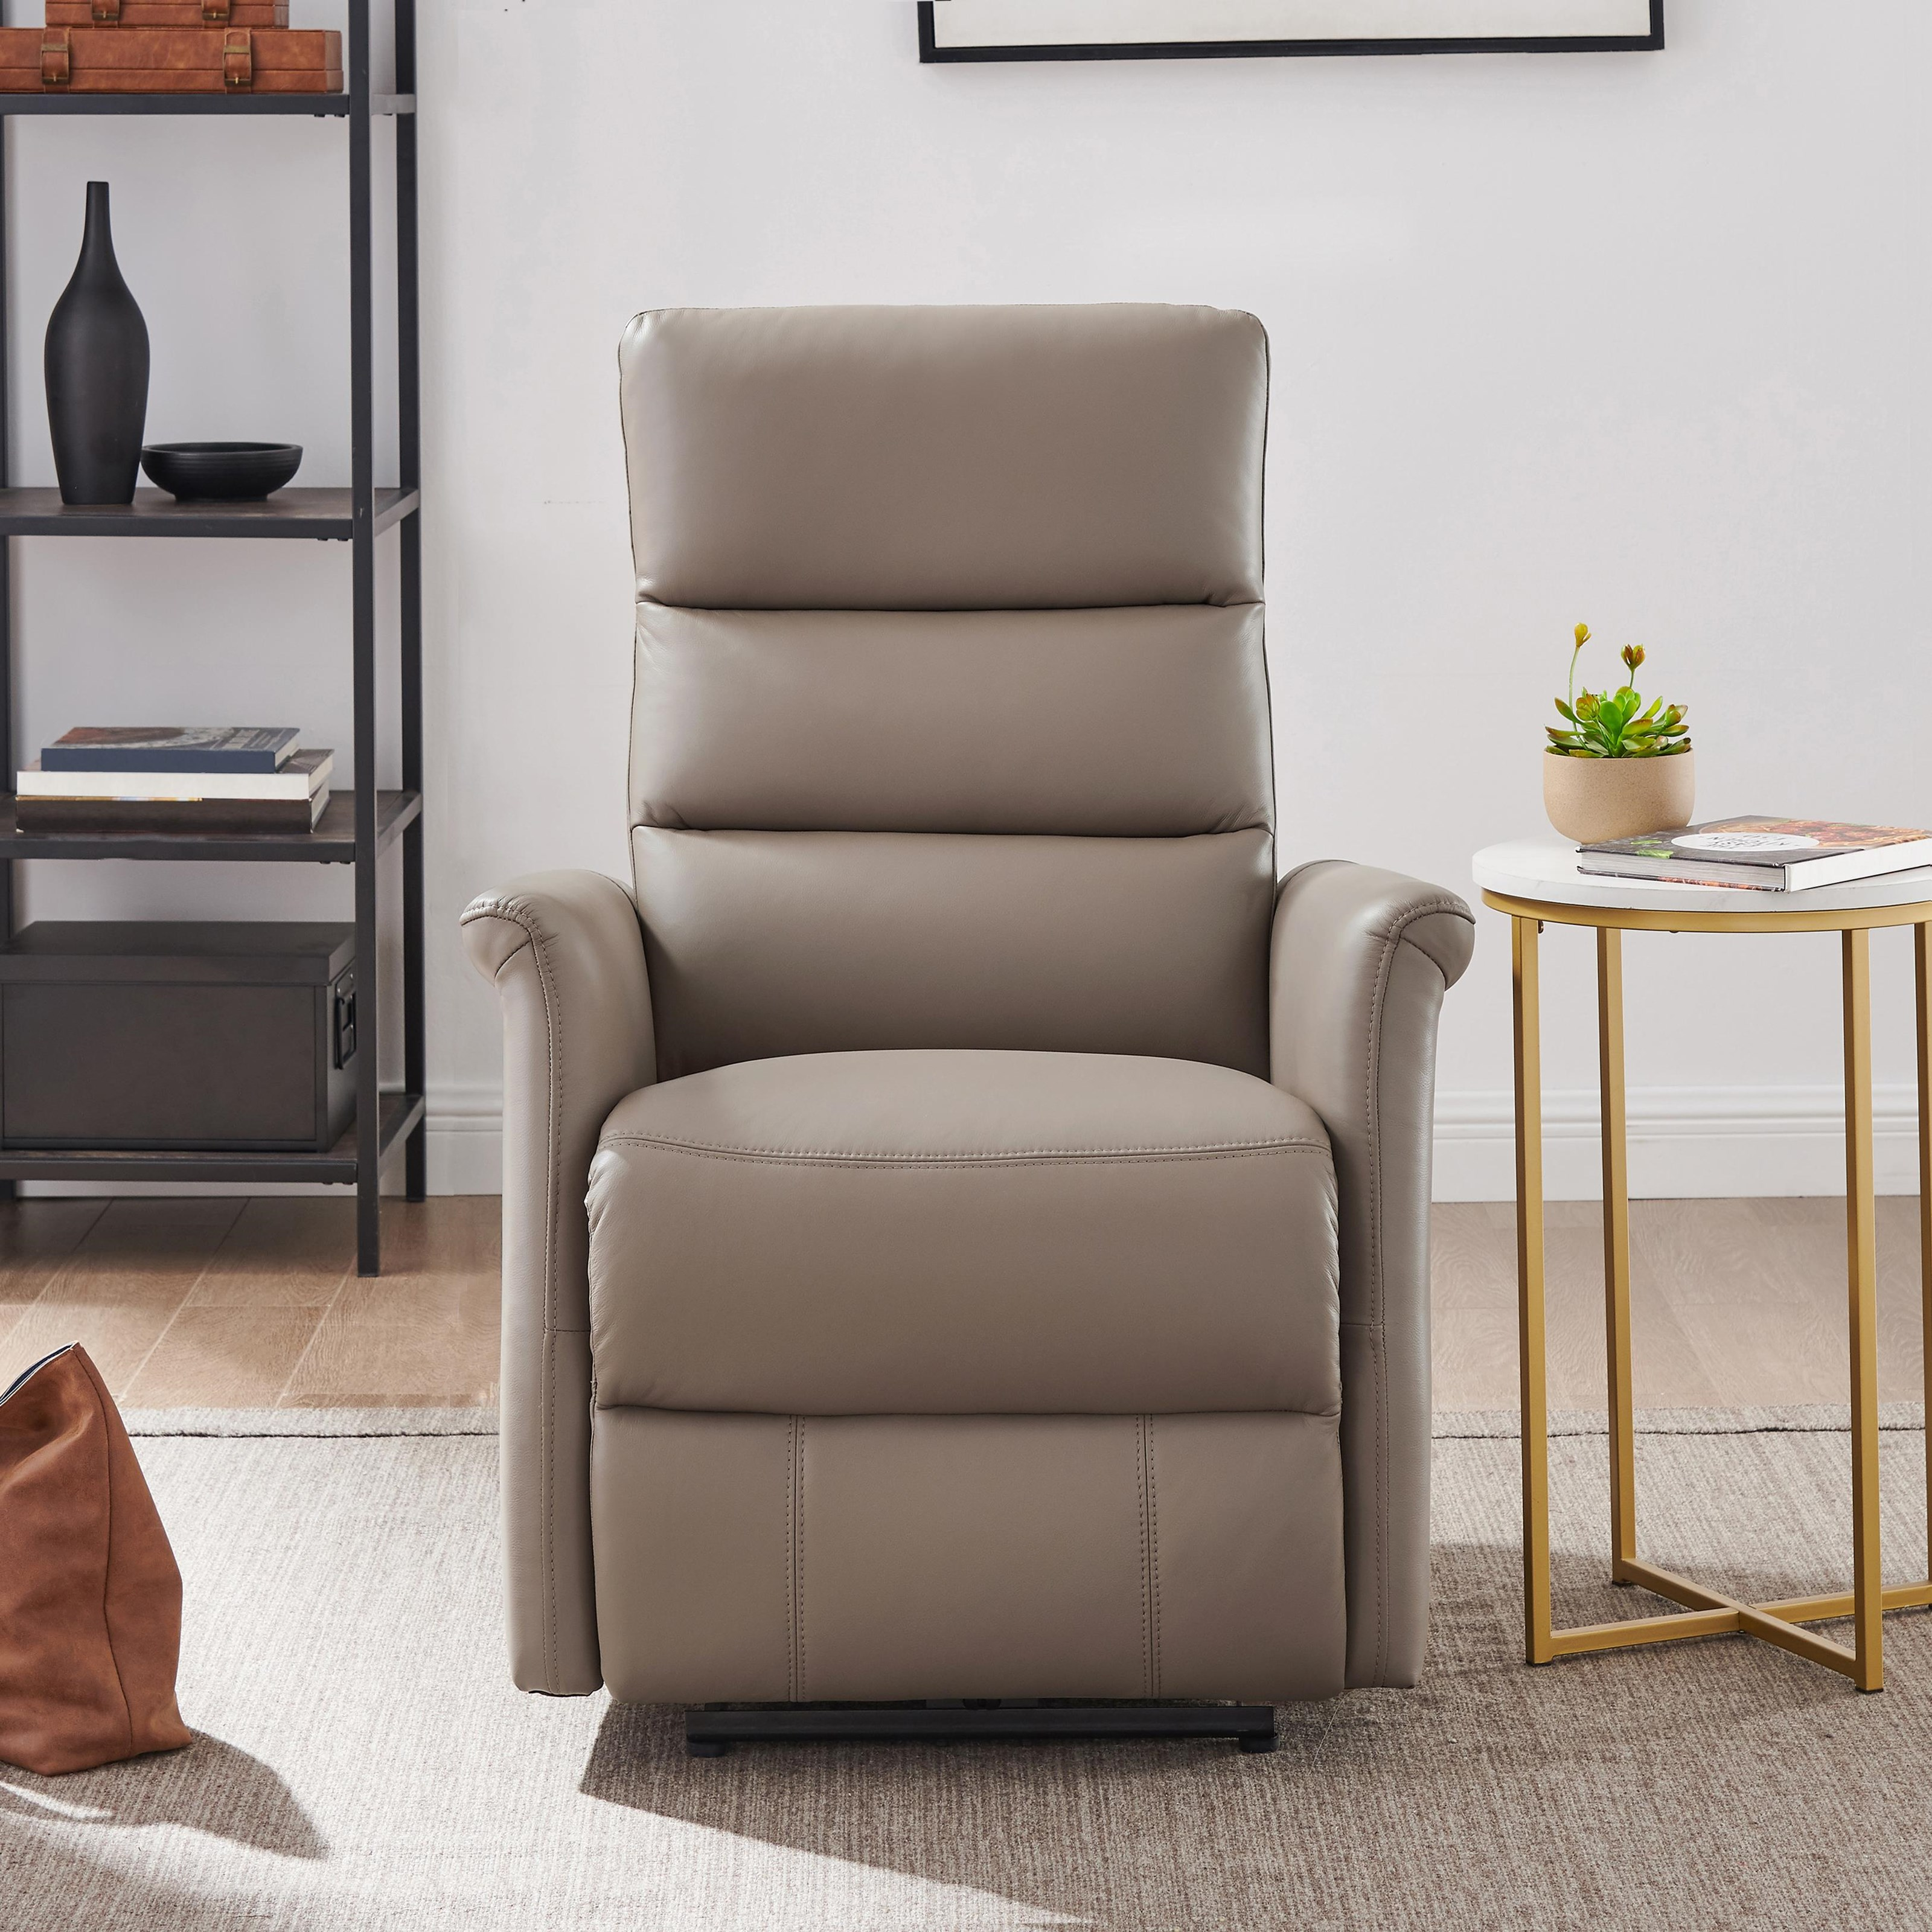 6610 DD Power Recliner by Amax at Stoney Creek Furniture